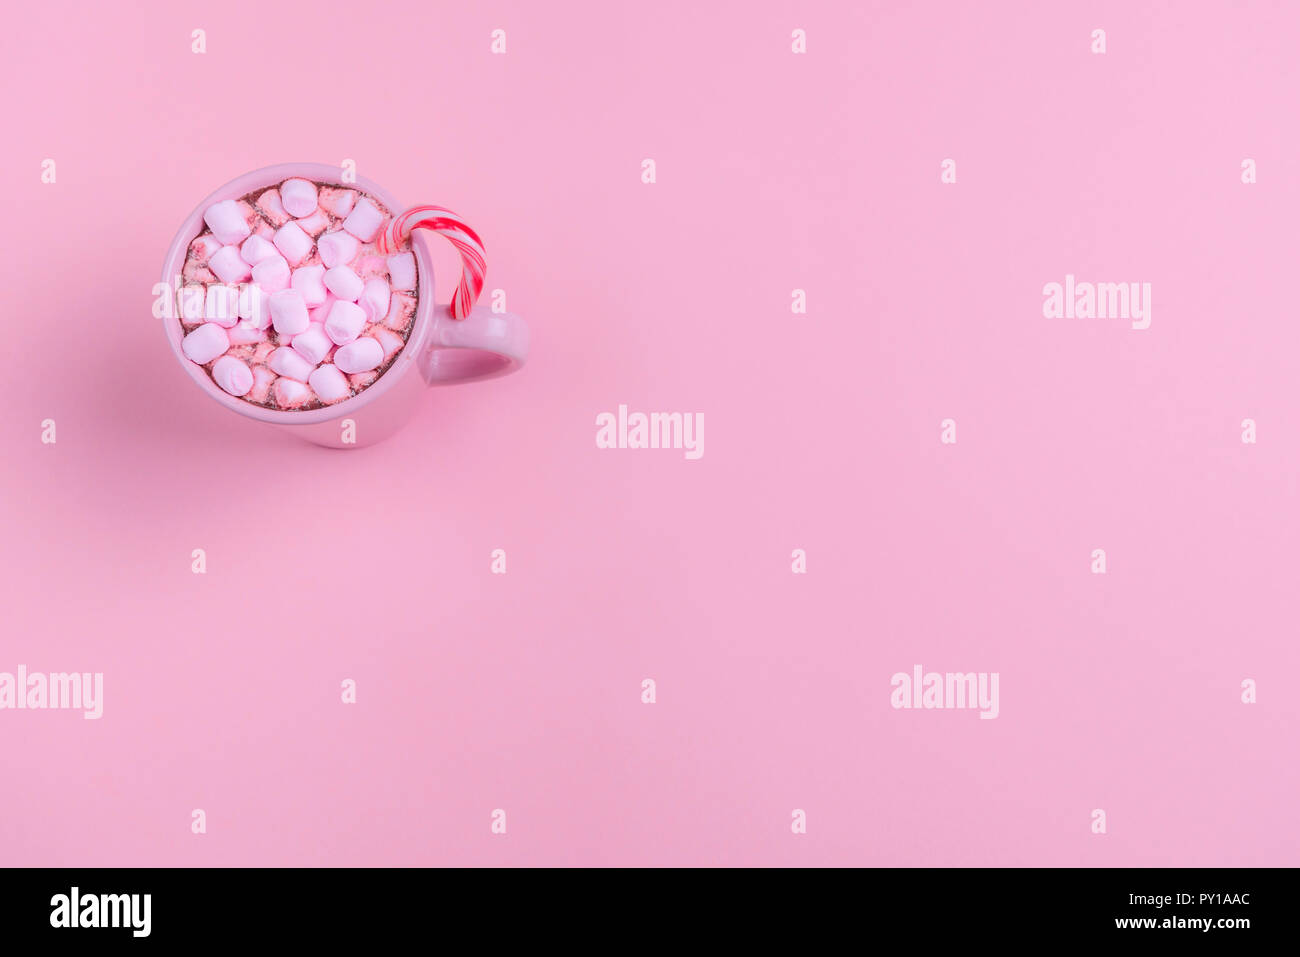 Christmas context in a minimal style with a pink cup of hot chocolate, mini marshmallows and an Xmas candy cane, on a pink paper background. Stock Photo